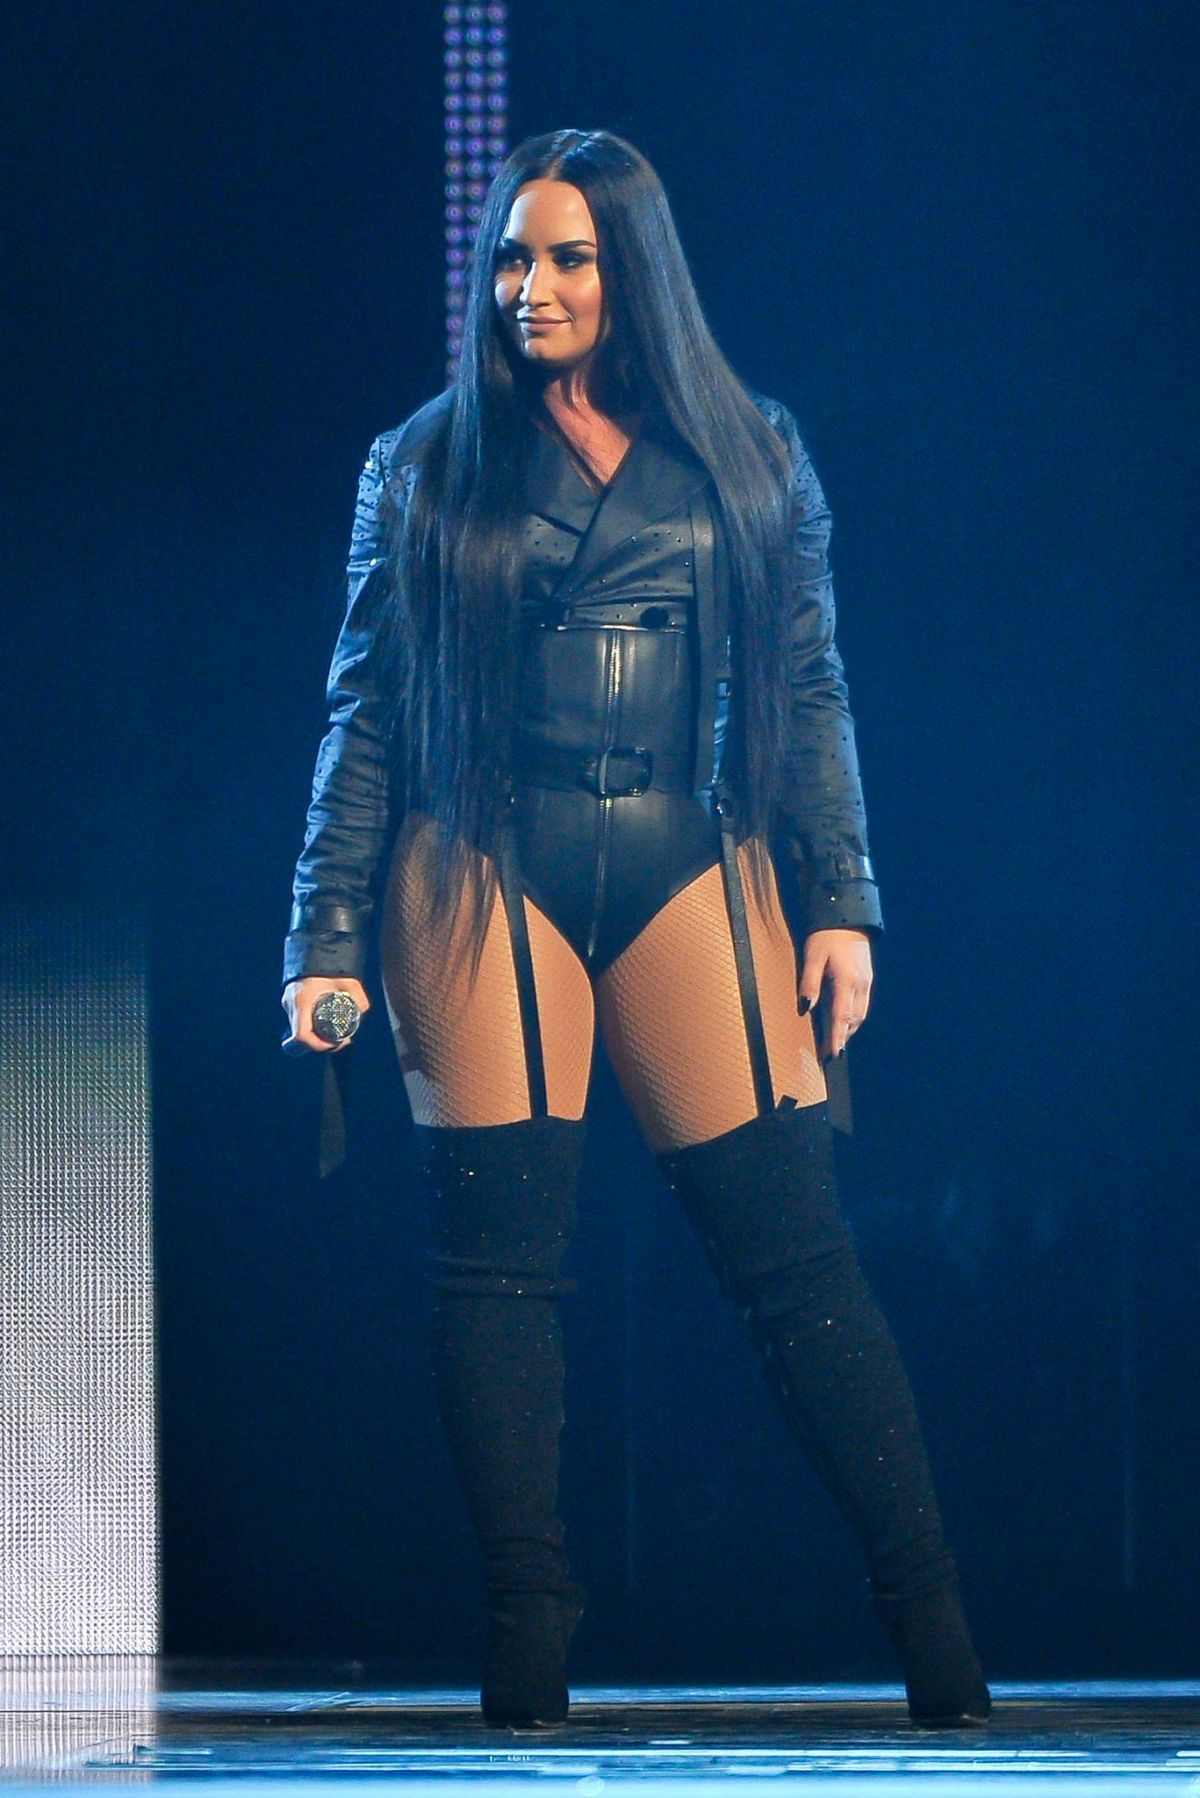 Http Www Hawtcelebs Com Wp Content Uploads 2018 03 Demi Lovato Performs At Her Tell Me You Love Me Tour In San Jos Demi Lovato Body Demi Lovato Pictures Demi